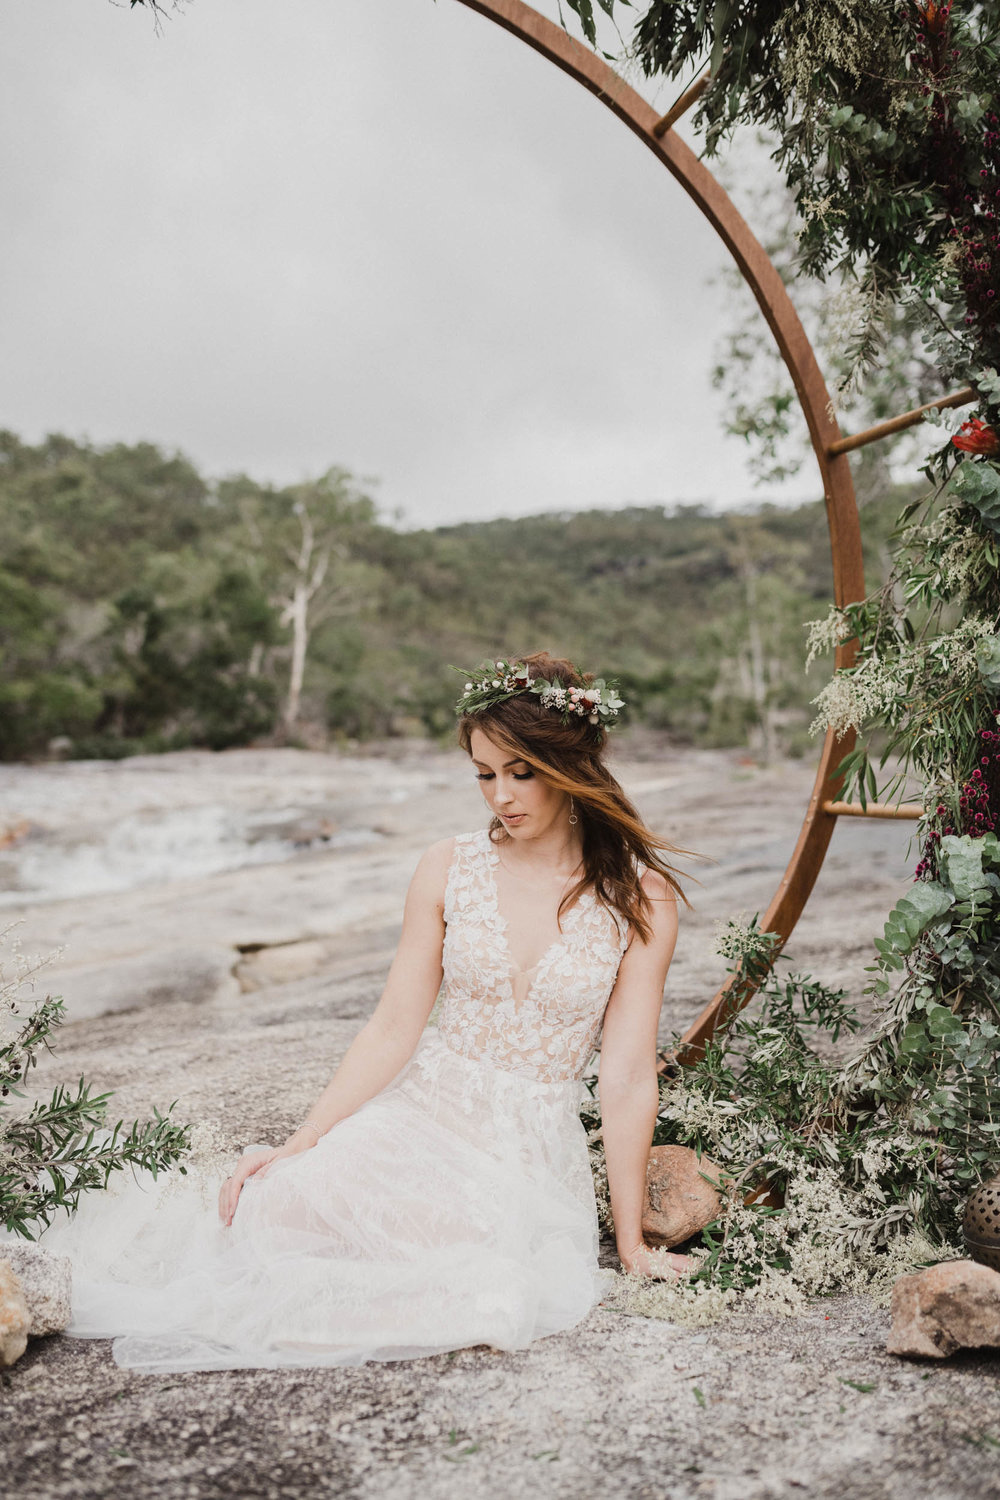 The Raw Photographer - Cairns Wedding Photographer - Brides Styled Shoot - Dress Jonovia Bridal - Hair Makeup Ideas-27.jpg